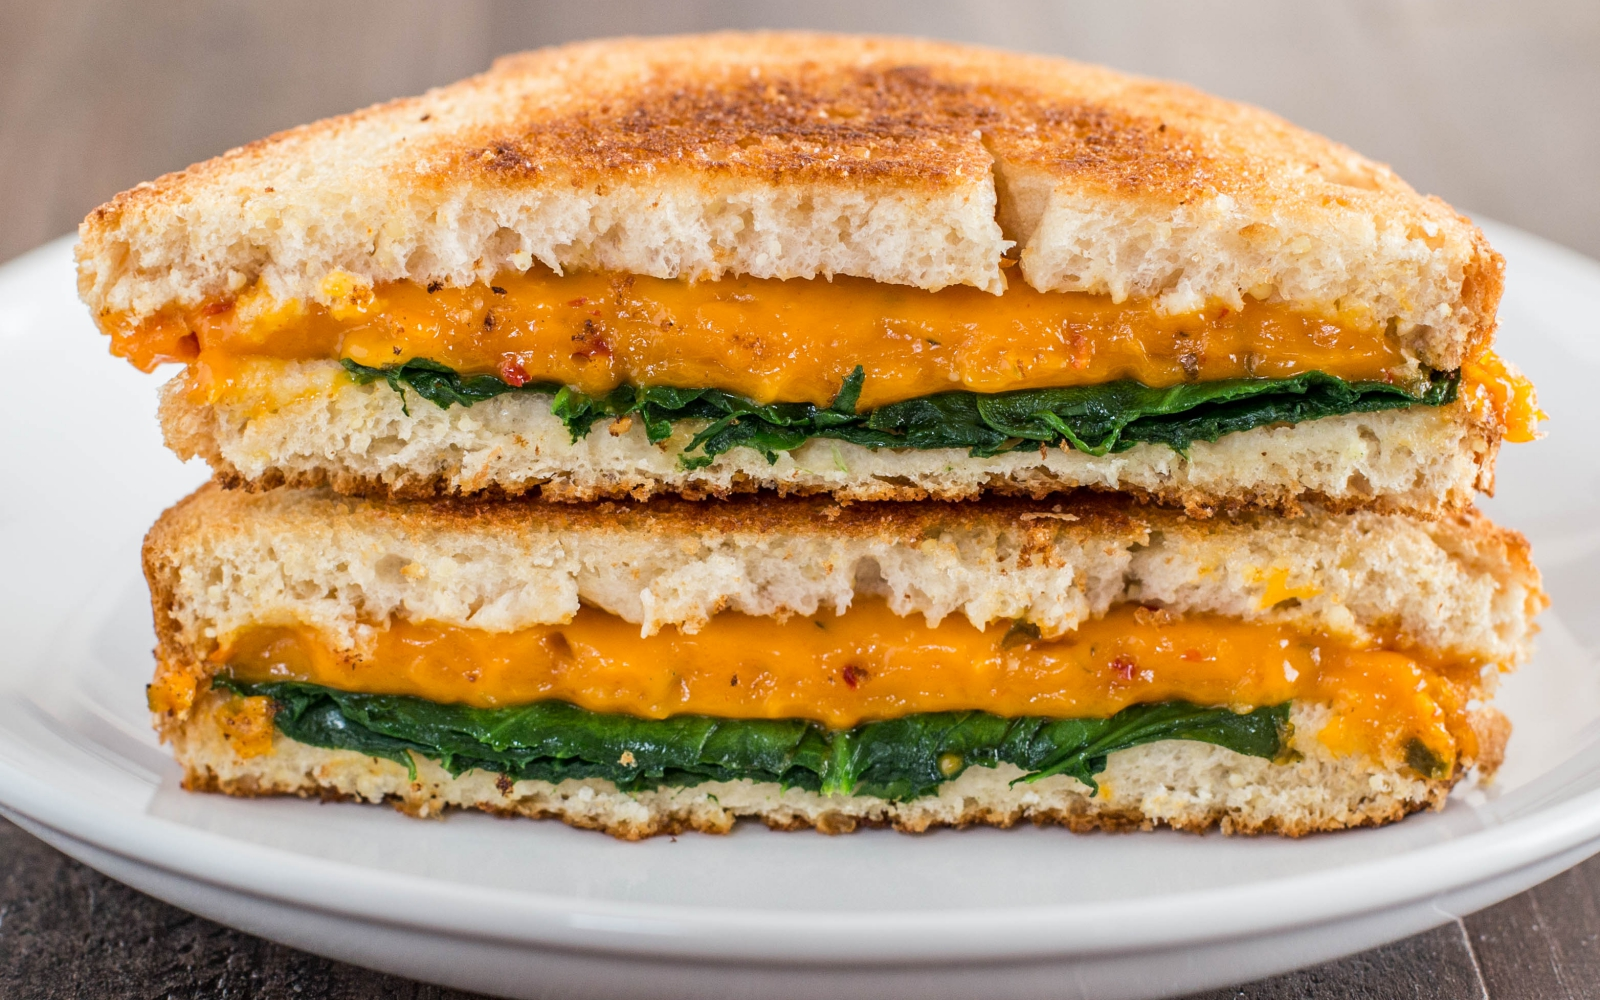 Vegan Gluten-Free Ooey-Gooey Grilled Cheese with greens